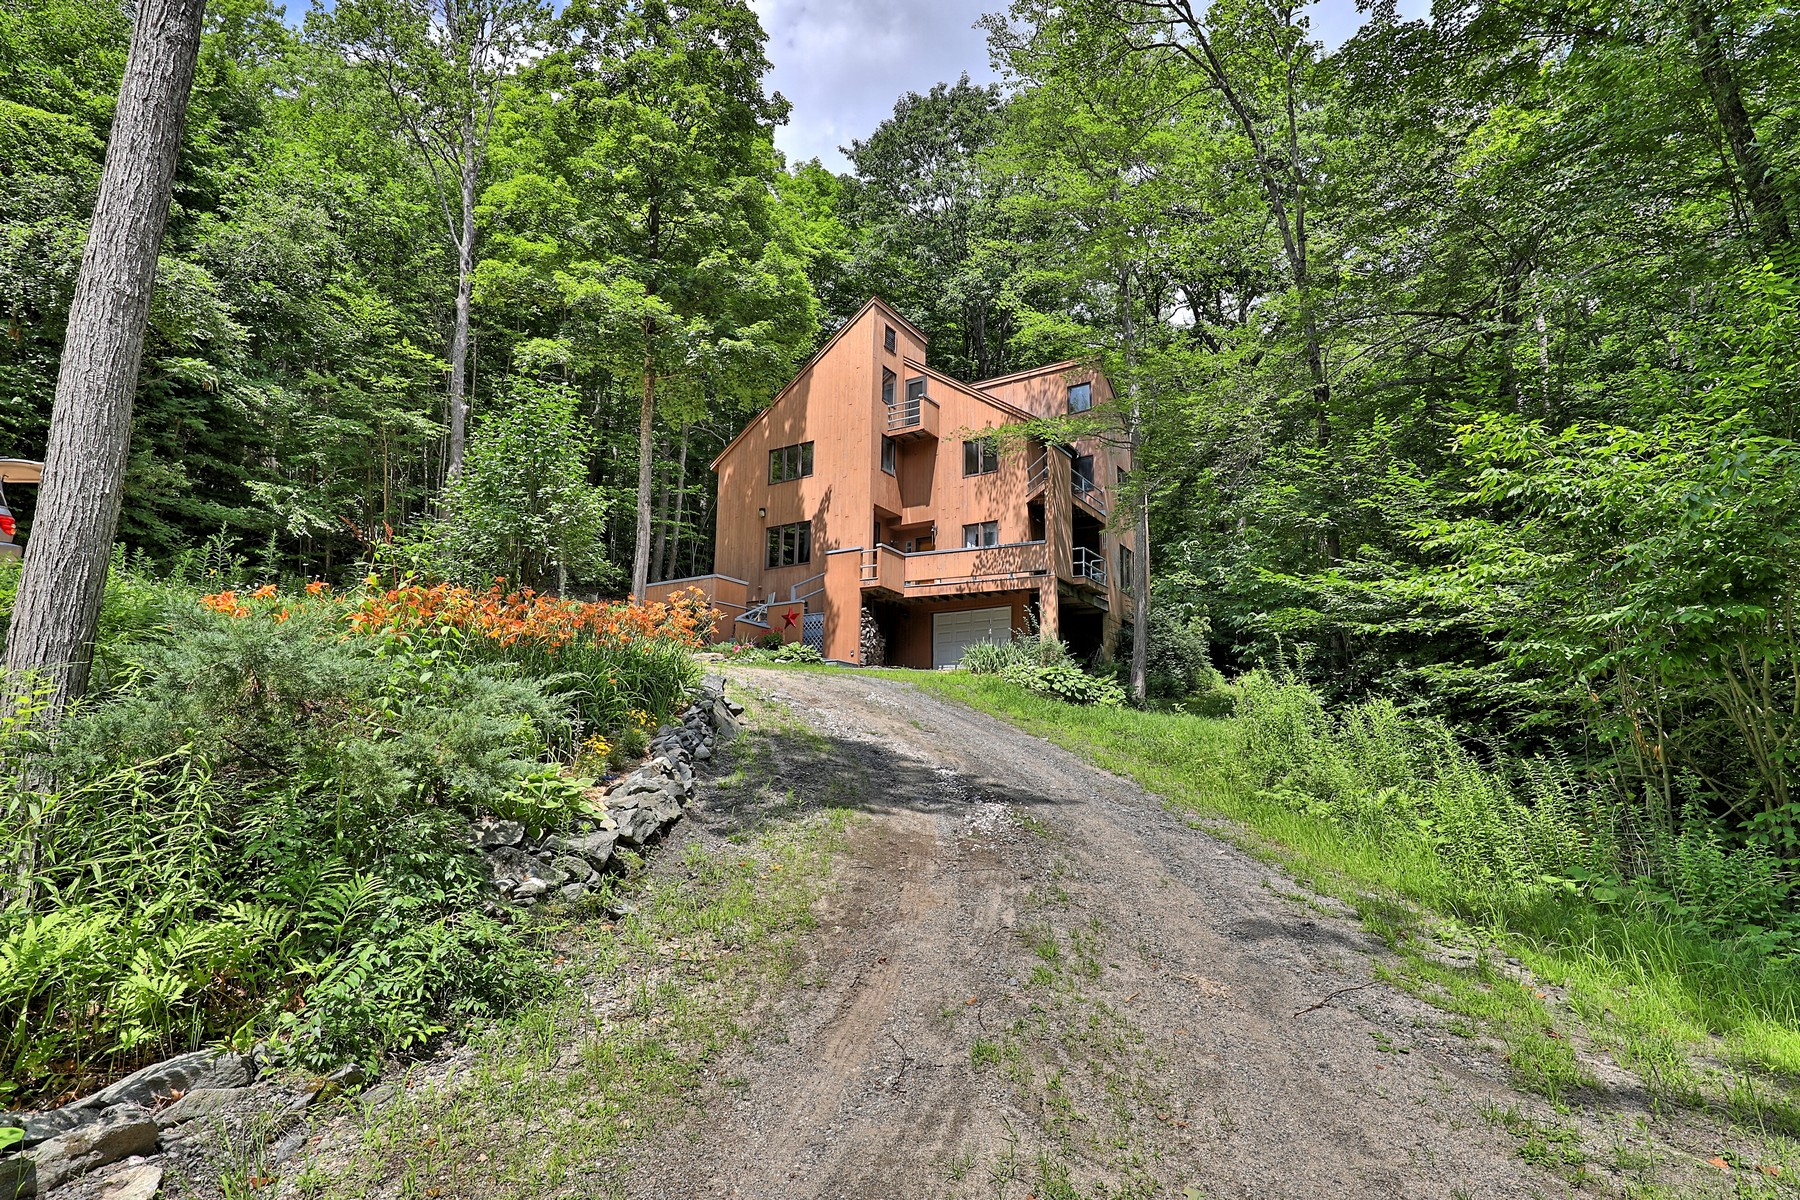 Single Family Homes for Sale at 3-Level Contemporary Nestled on 10 Acres 785 Stage Coach Rd Grafton, Vermont 05146 United States